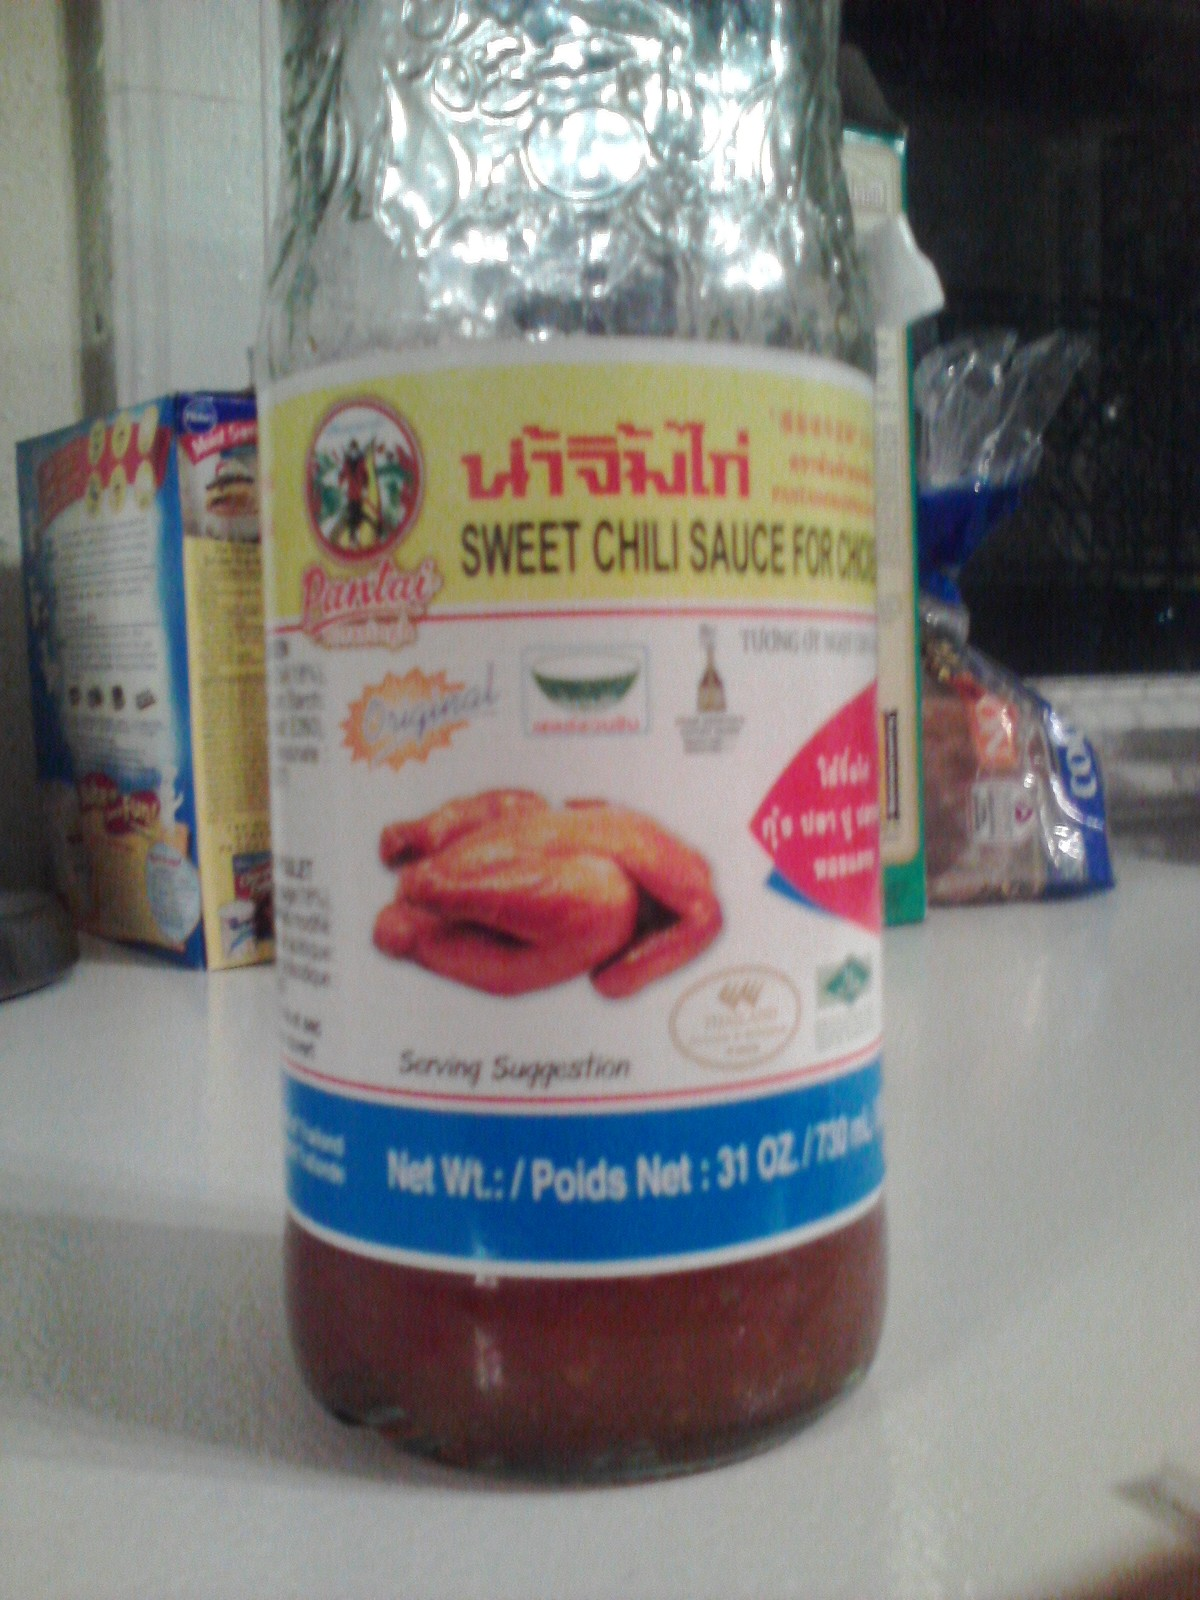 We put this on eggs, lumpia and whatever. There is also a jafron banana sauce that you can use like ketchup and it is red too. This sweet sauce is almost addicting. I bought a bottle for my brother in law who is Guatemalan and now they have to go buy it because he likes it so much.